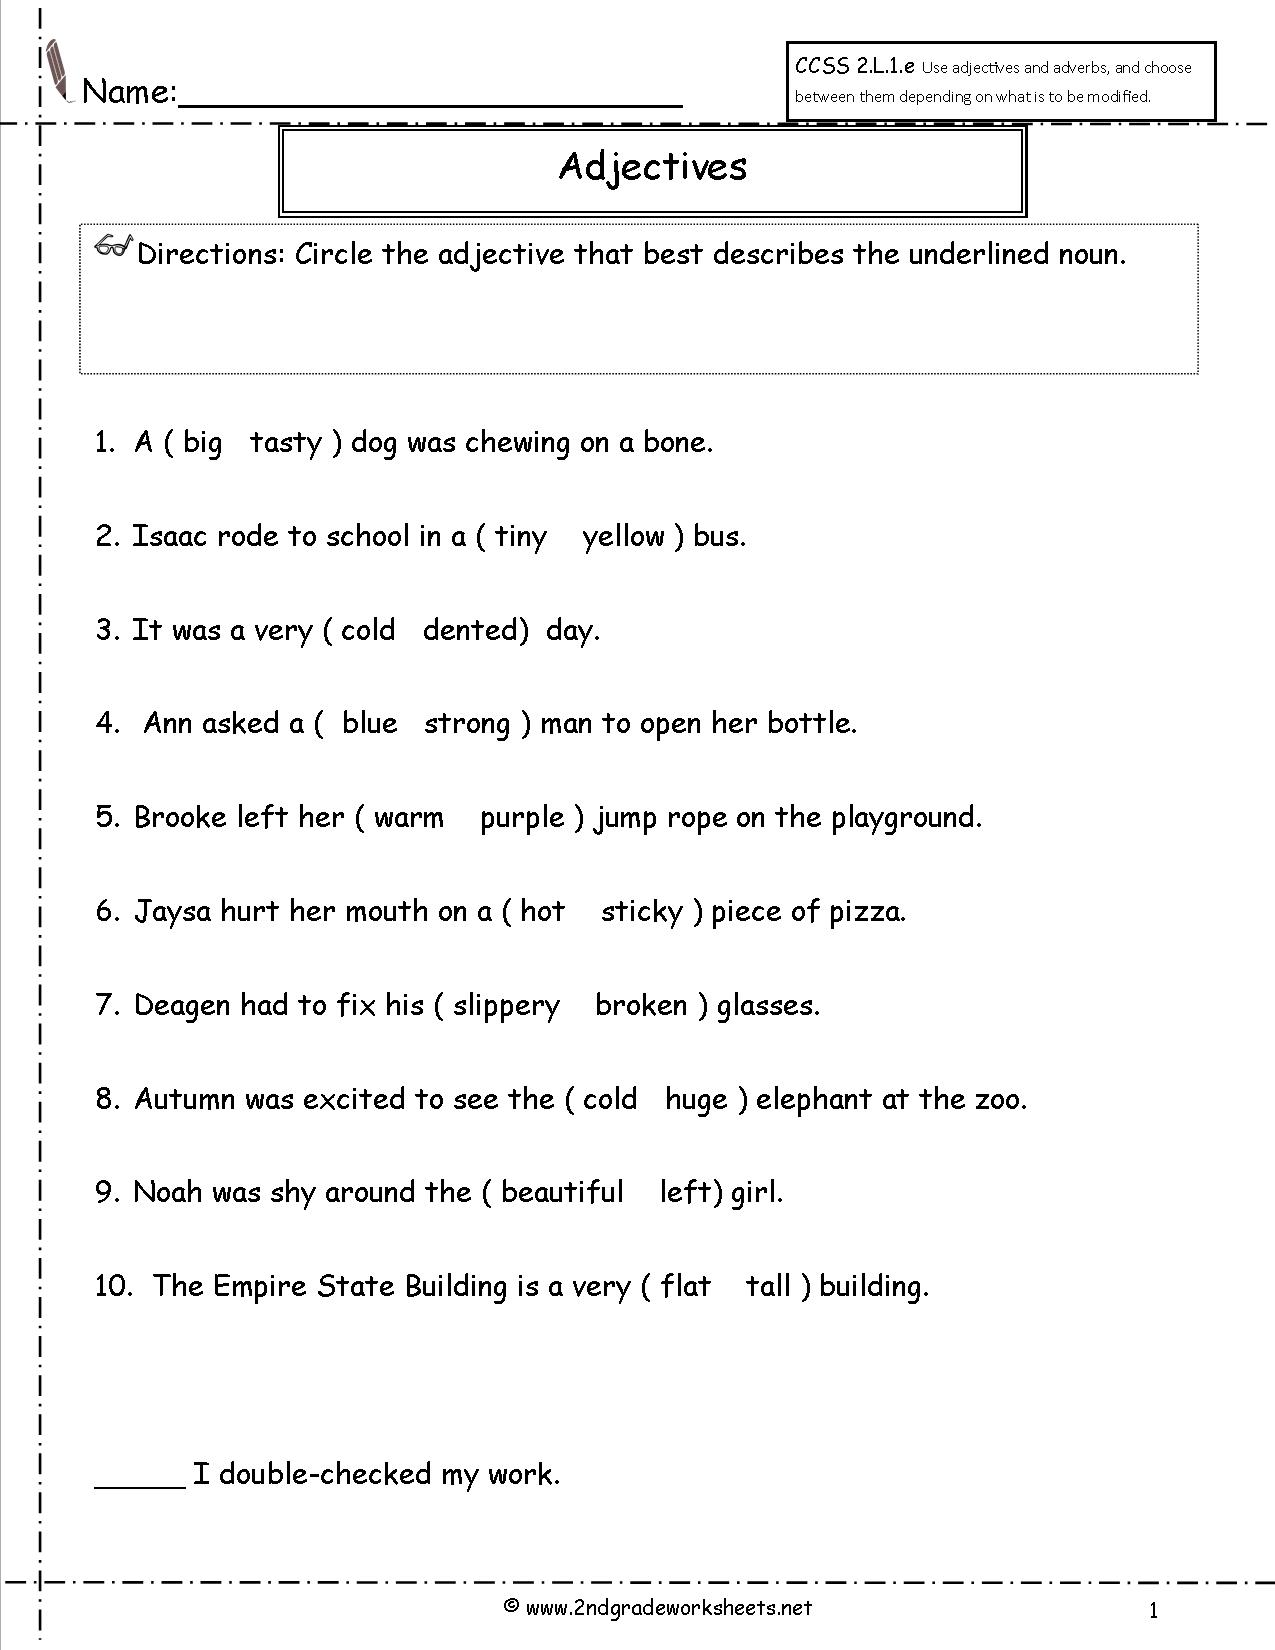 Worksheet Fry Sight Words Flash Cards Printable adjectives worksheets for 1st grade scalien free using worksheets